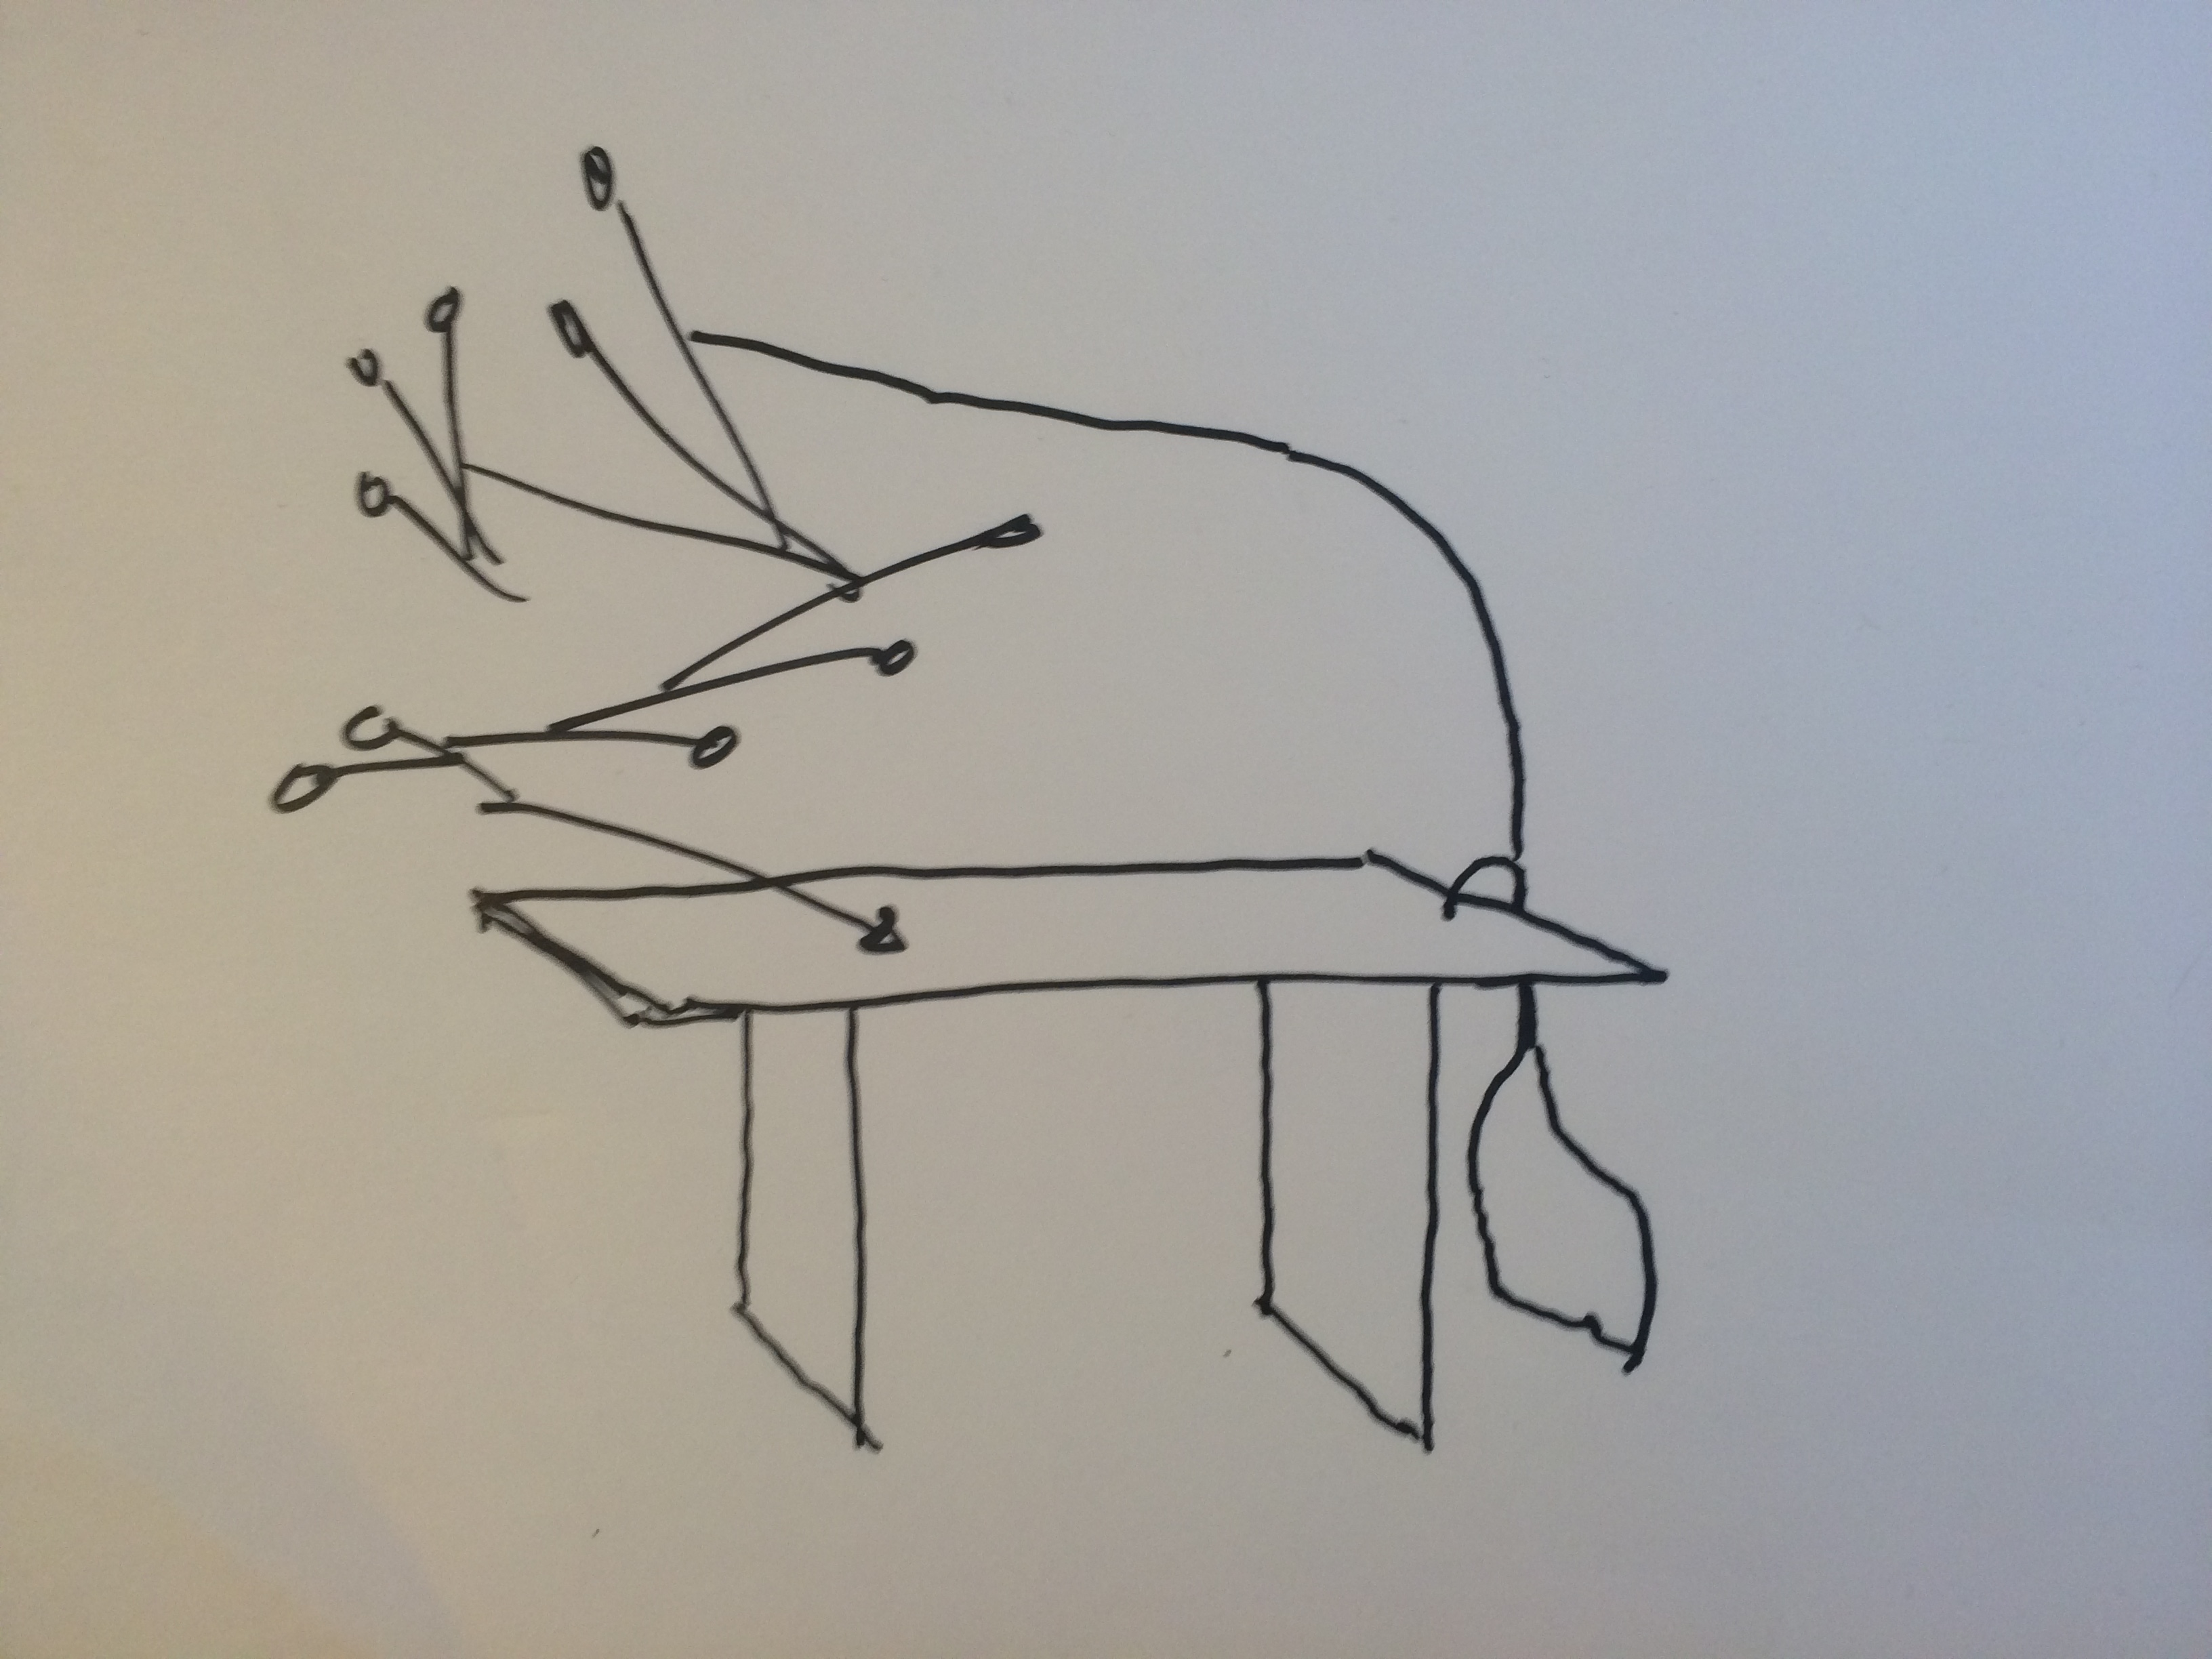 My sketch of this powerful Calder mobile